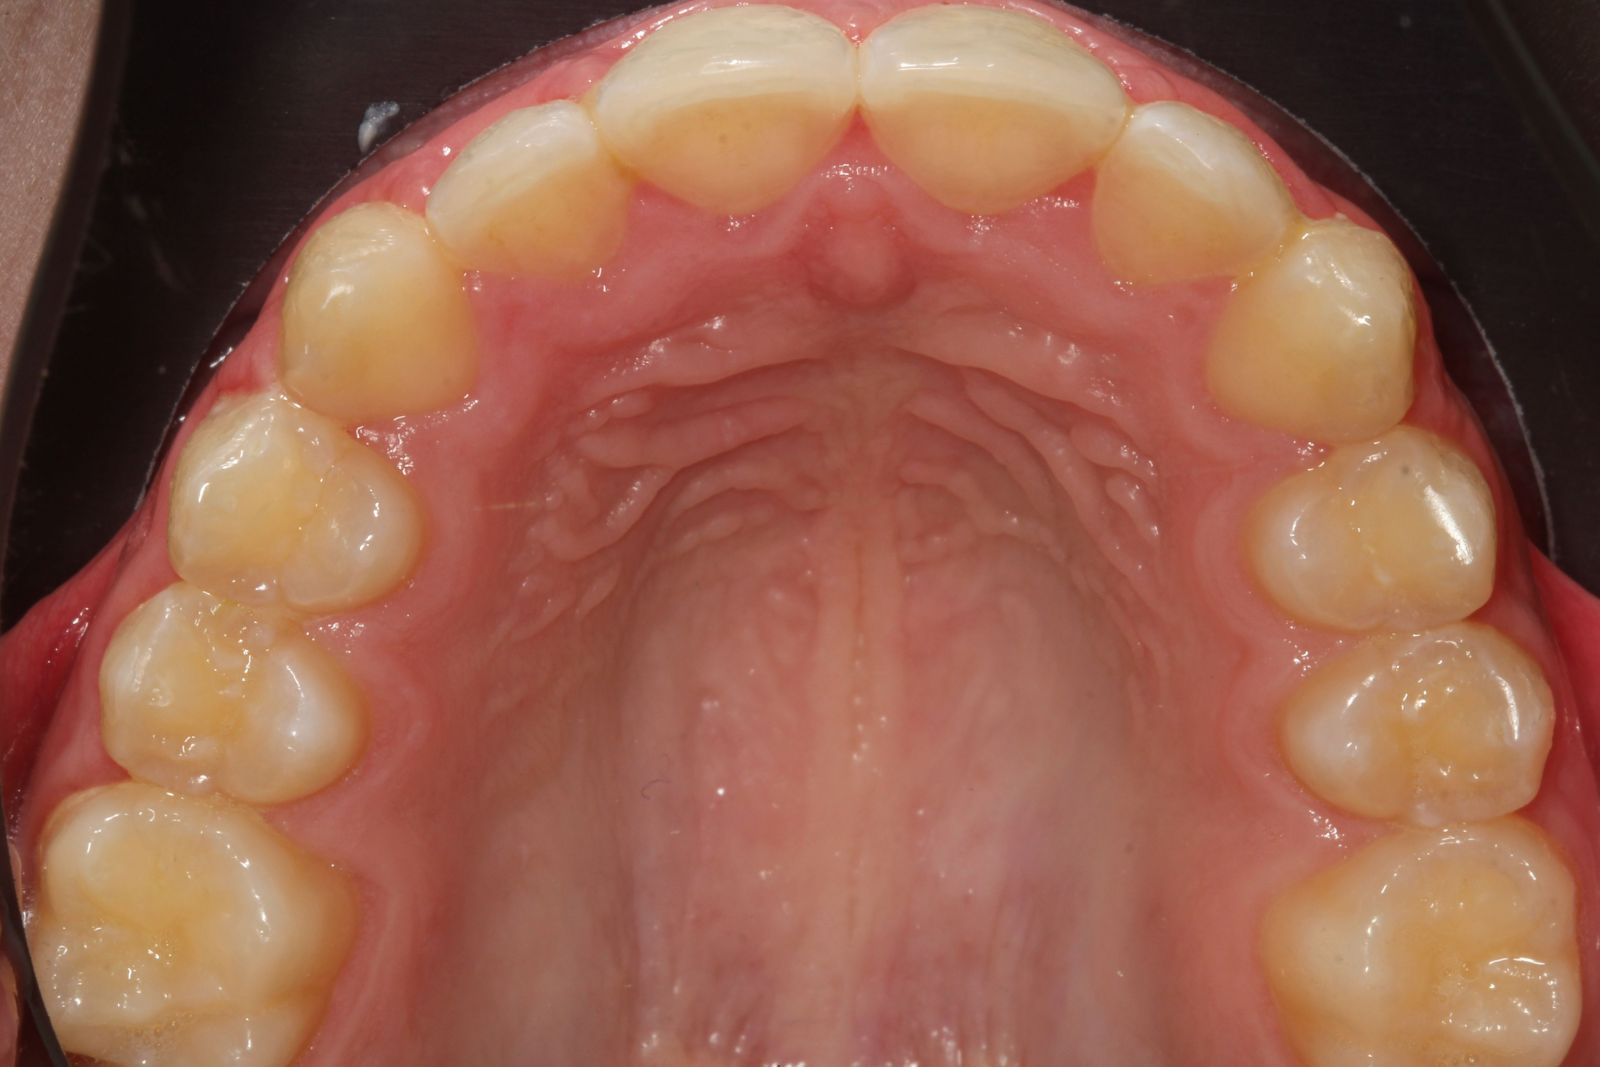 Upper teeth after Invisalign